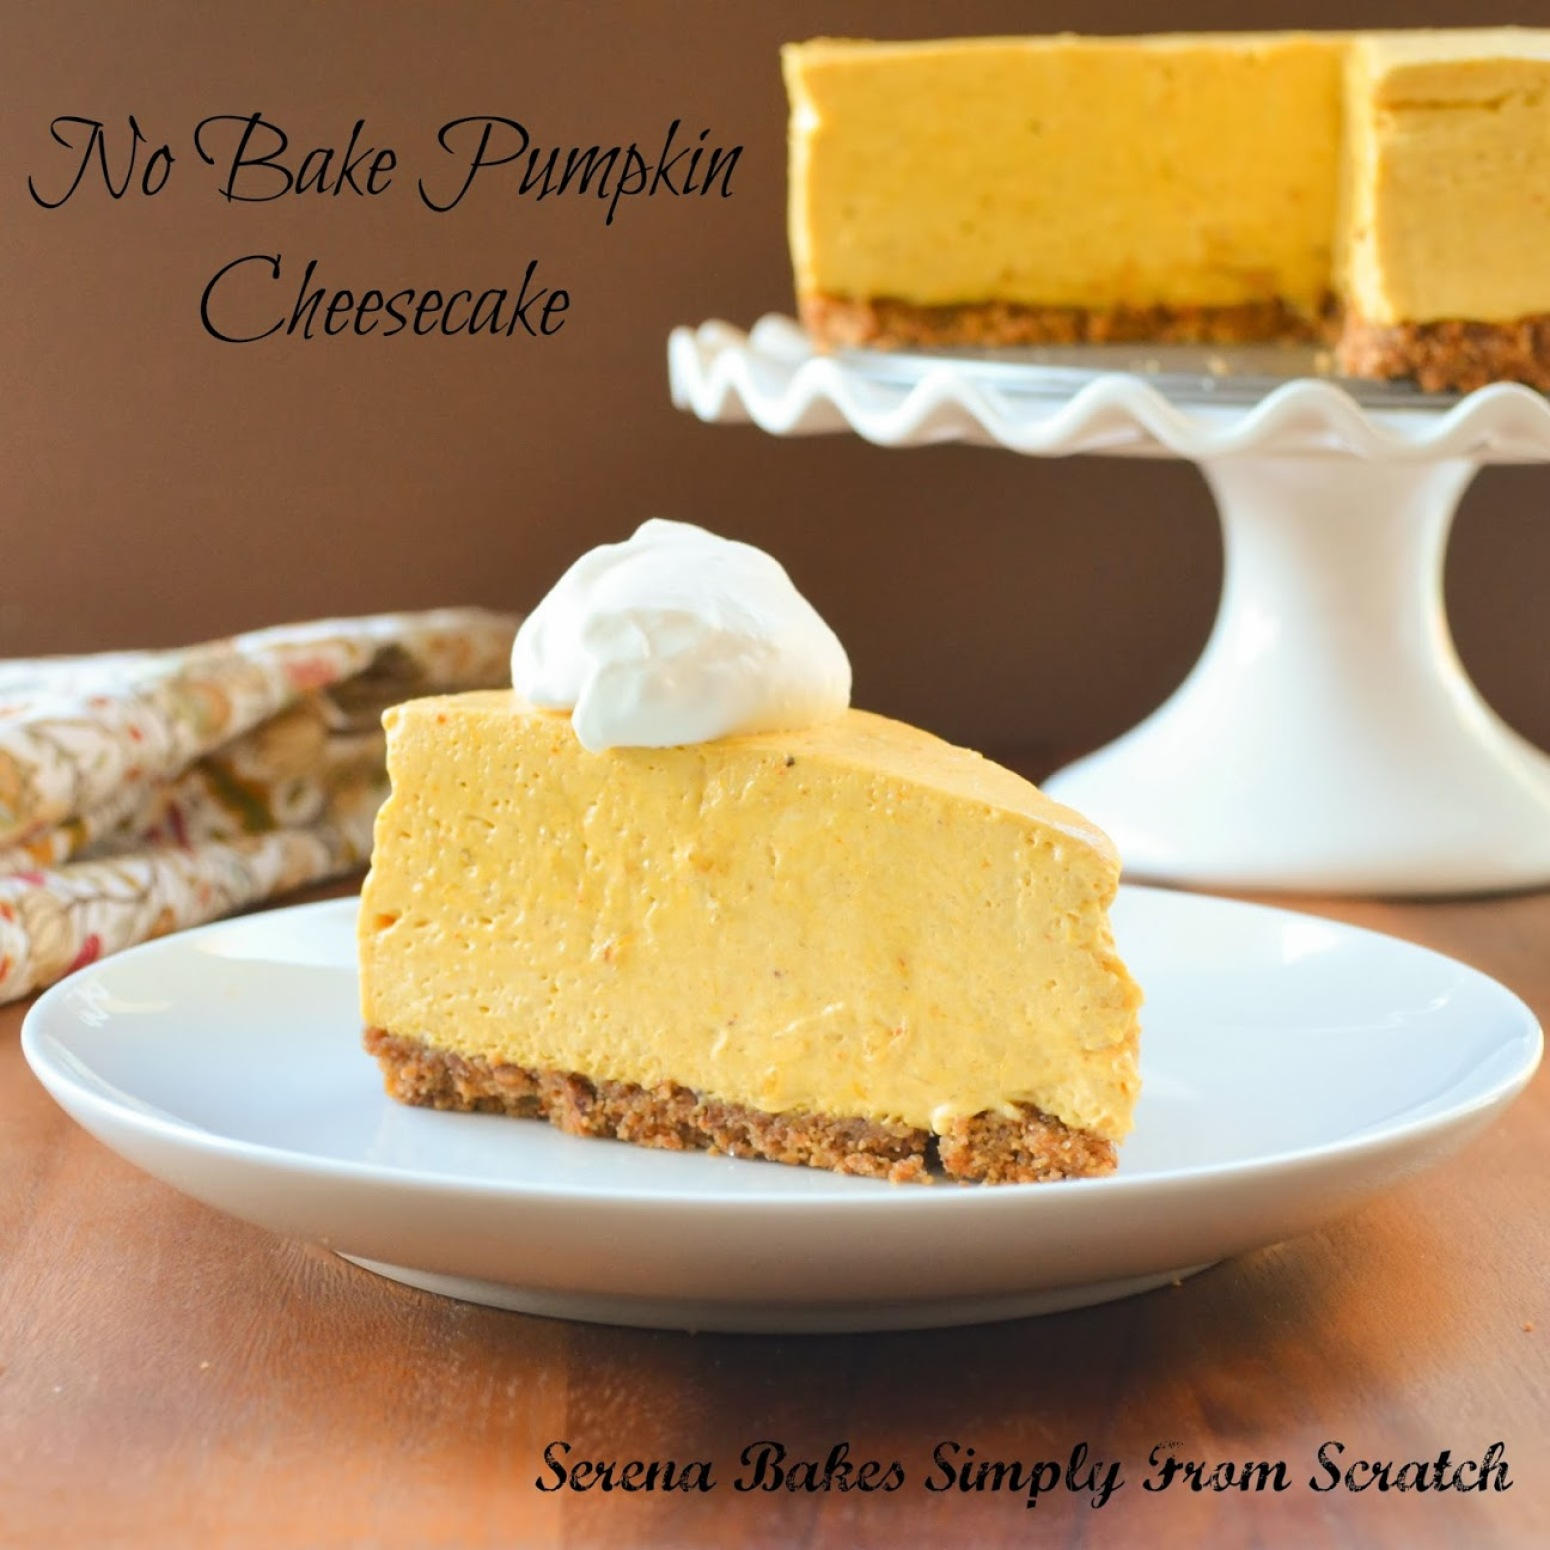 No Bake Pumpkin Cheesecake With Toasted Pecan Graham Cracker Crust ...